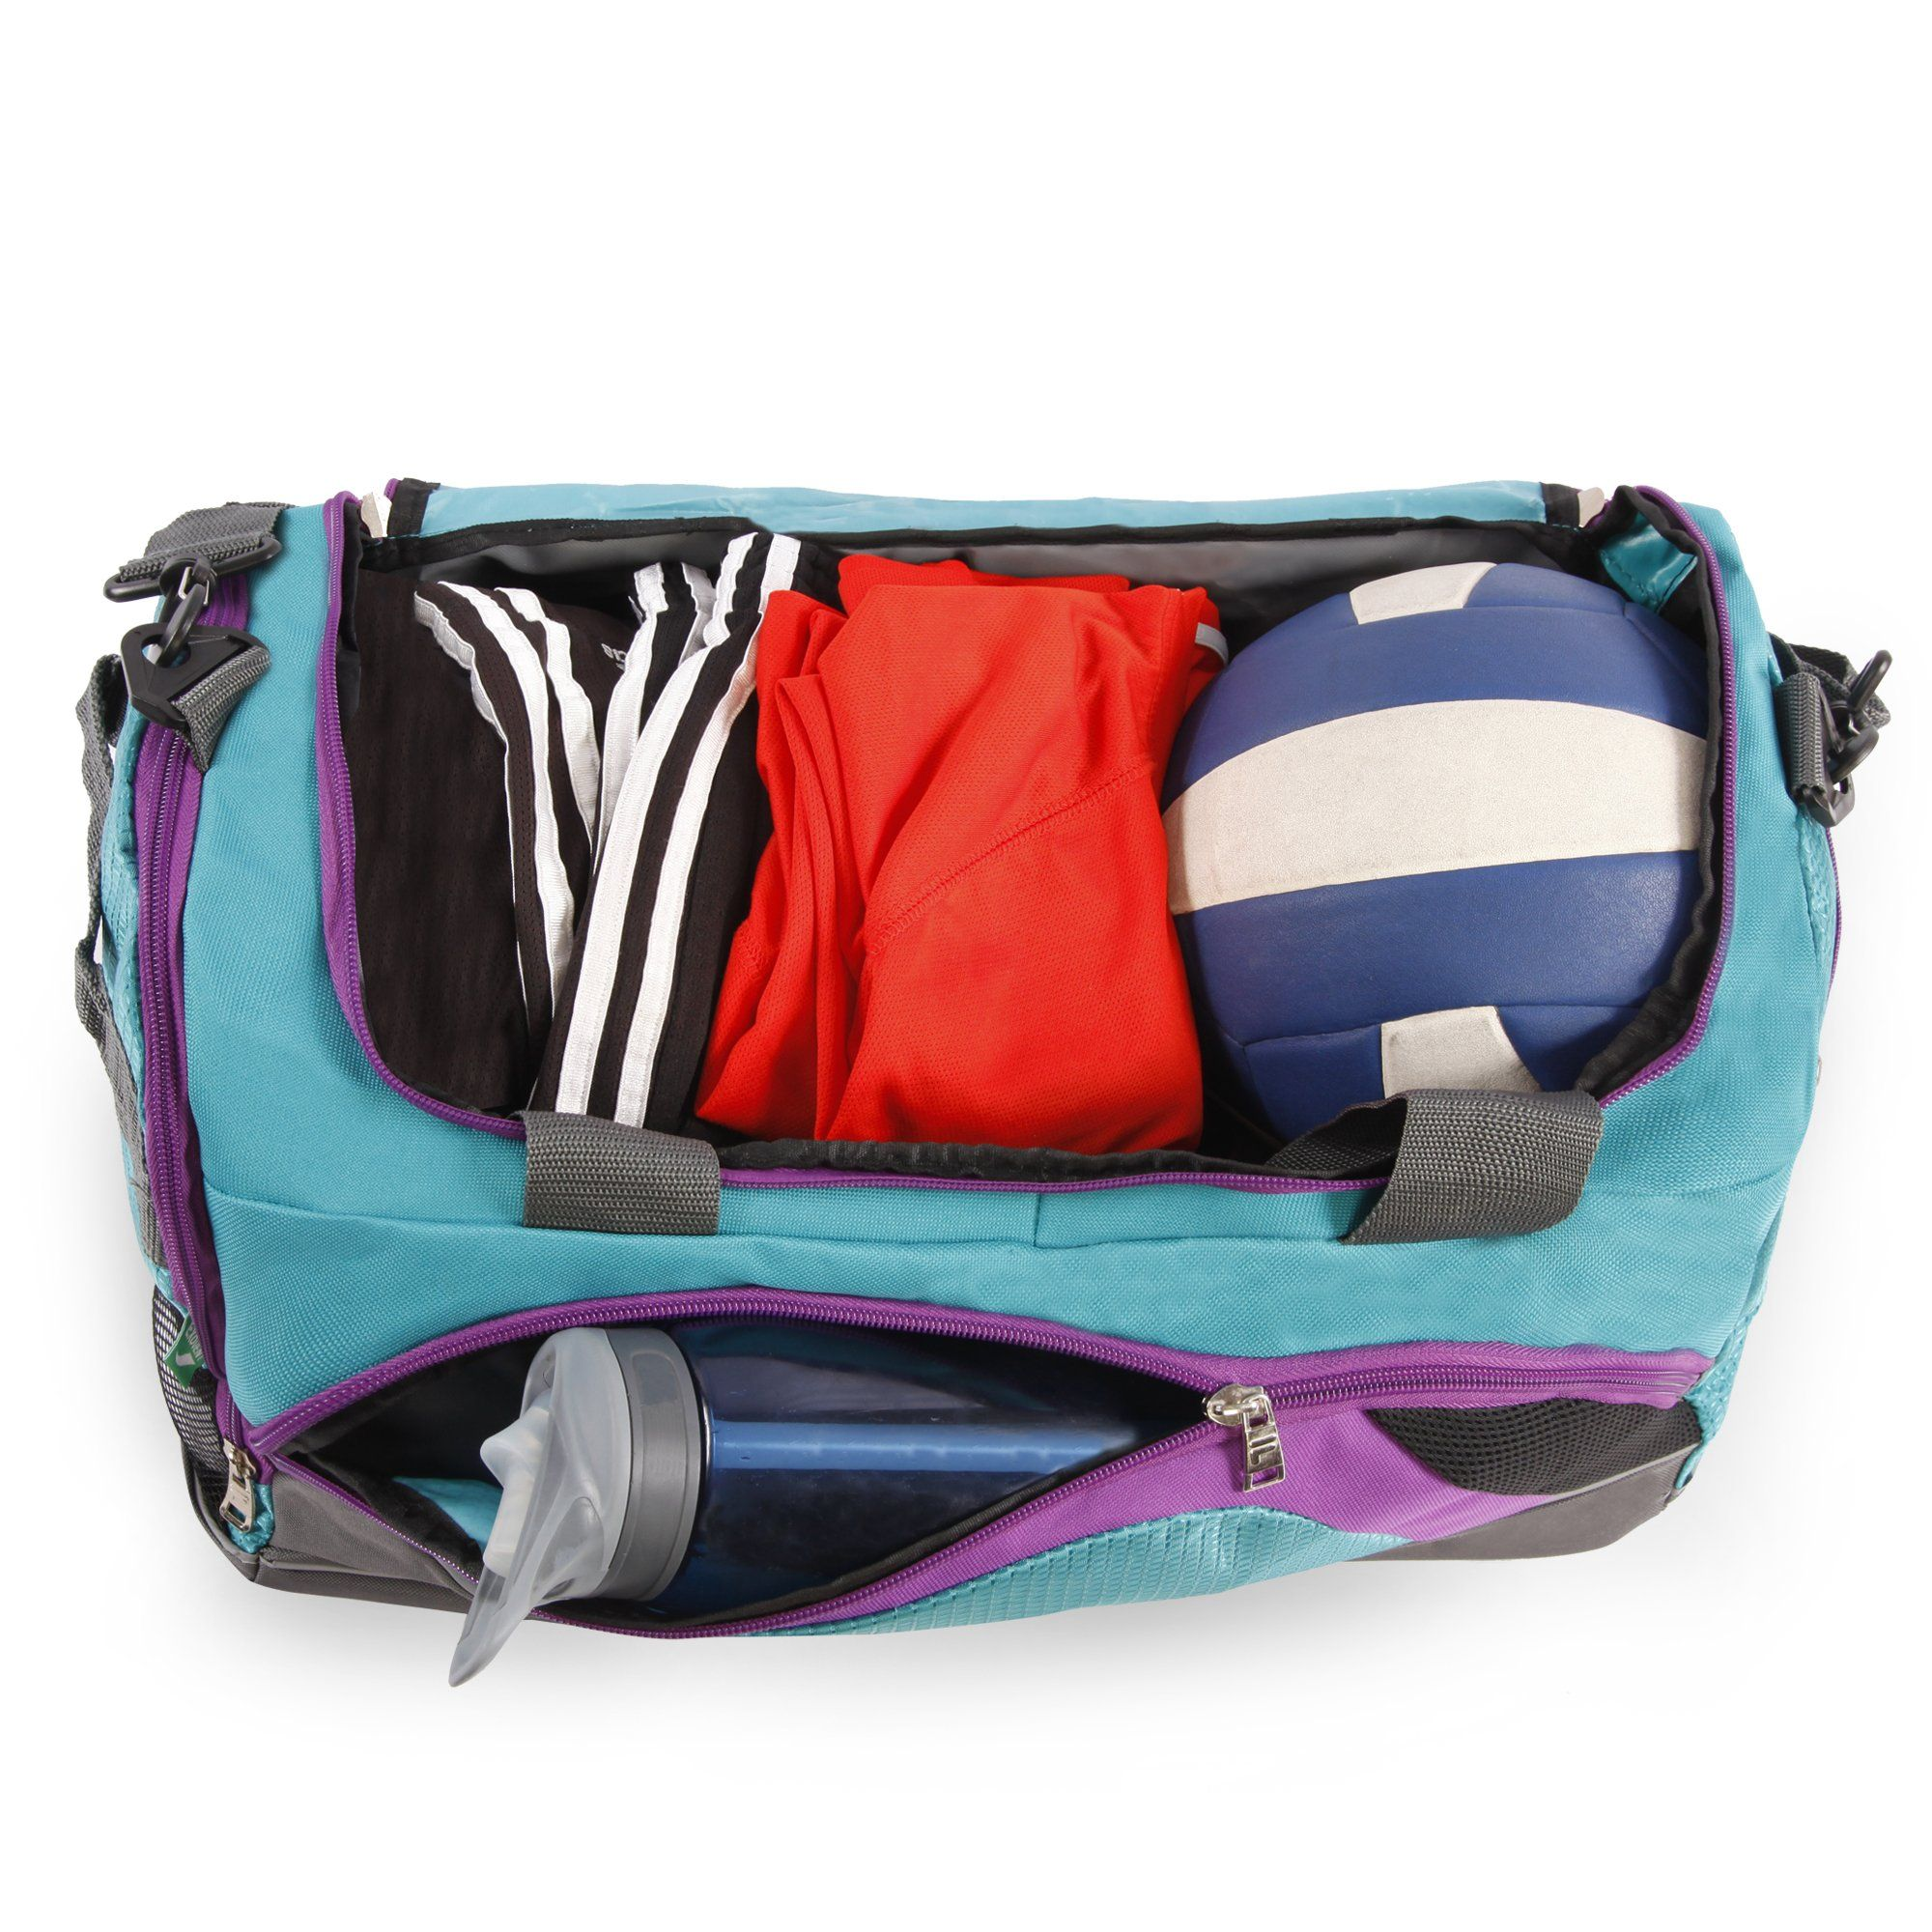 81d645c34b0 Advantage Small Duffel Gym Sports Bag with Shoe Compartment   Continuously  the product at the photo web link. (This is an affiliate link).  gymbags